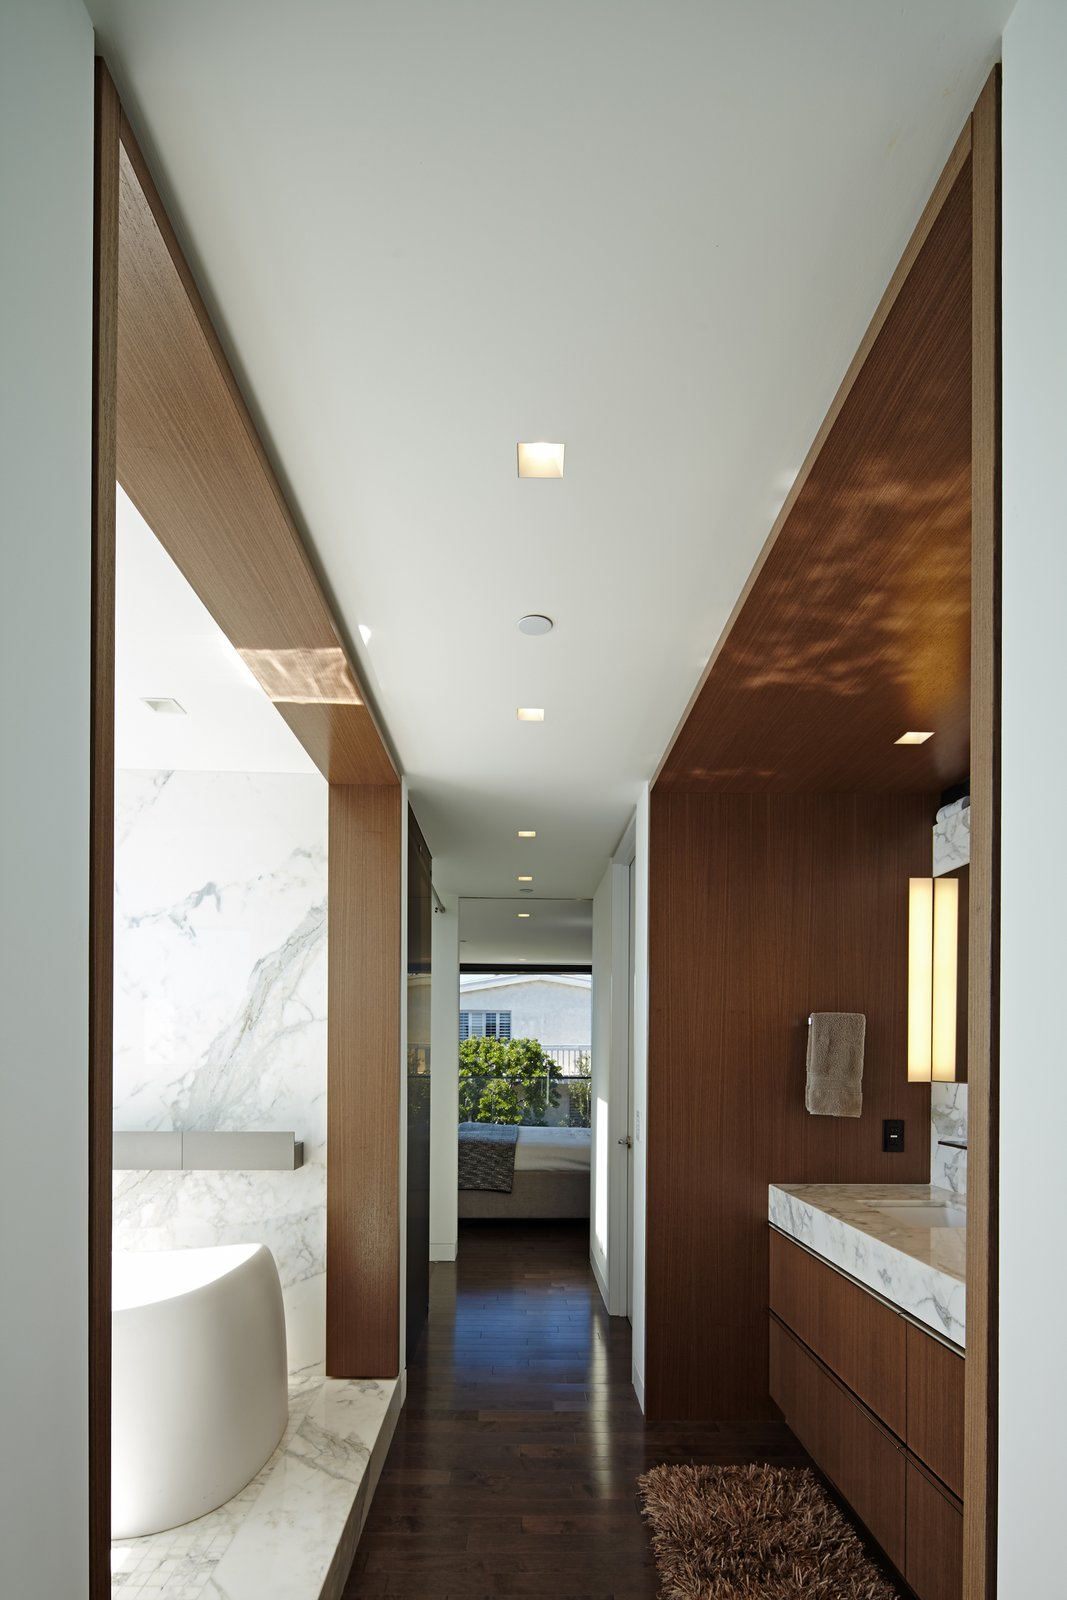 Working within the narrow structure, the master bath occupies a passage into the bedroom with intricate architectural detail.    Perrin Residence by Abramson Teiger Architects